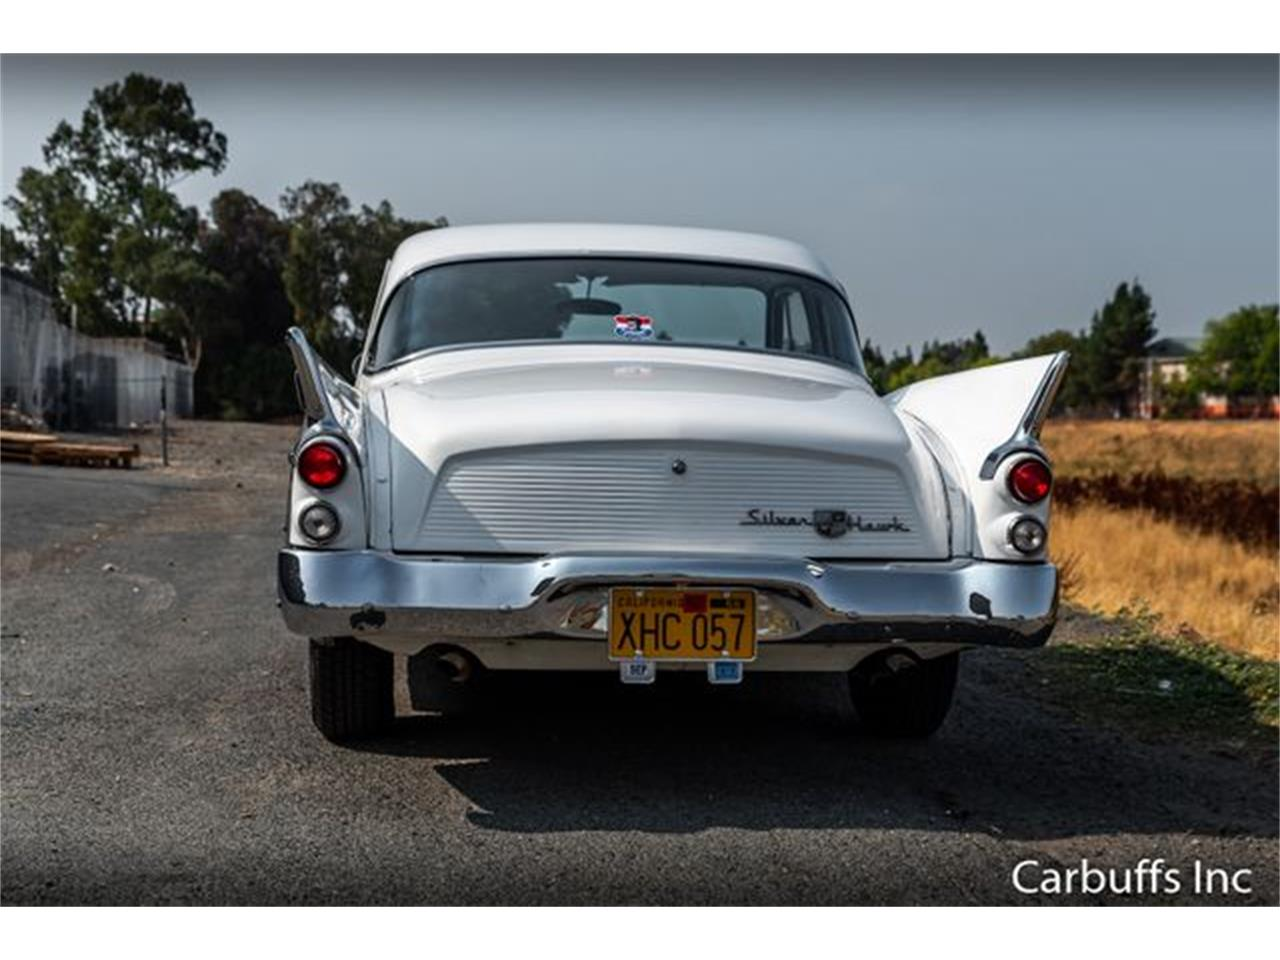 Large Picture of Classic 1957 Studebaker Silver Hawk located in Concord California - $11,950.00 - PGPN